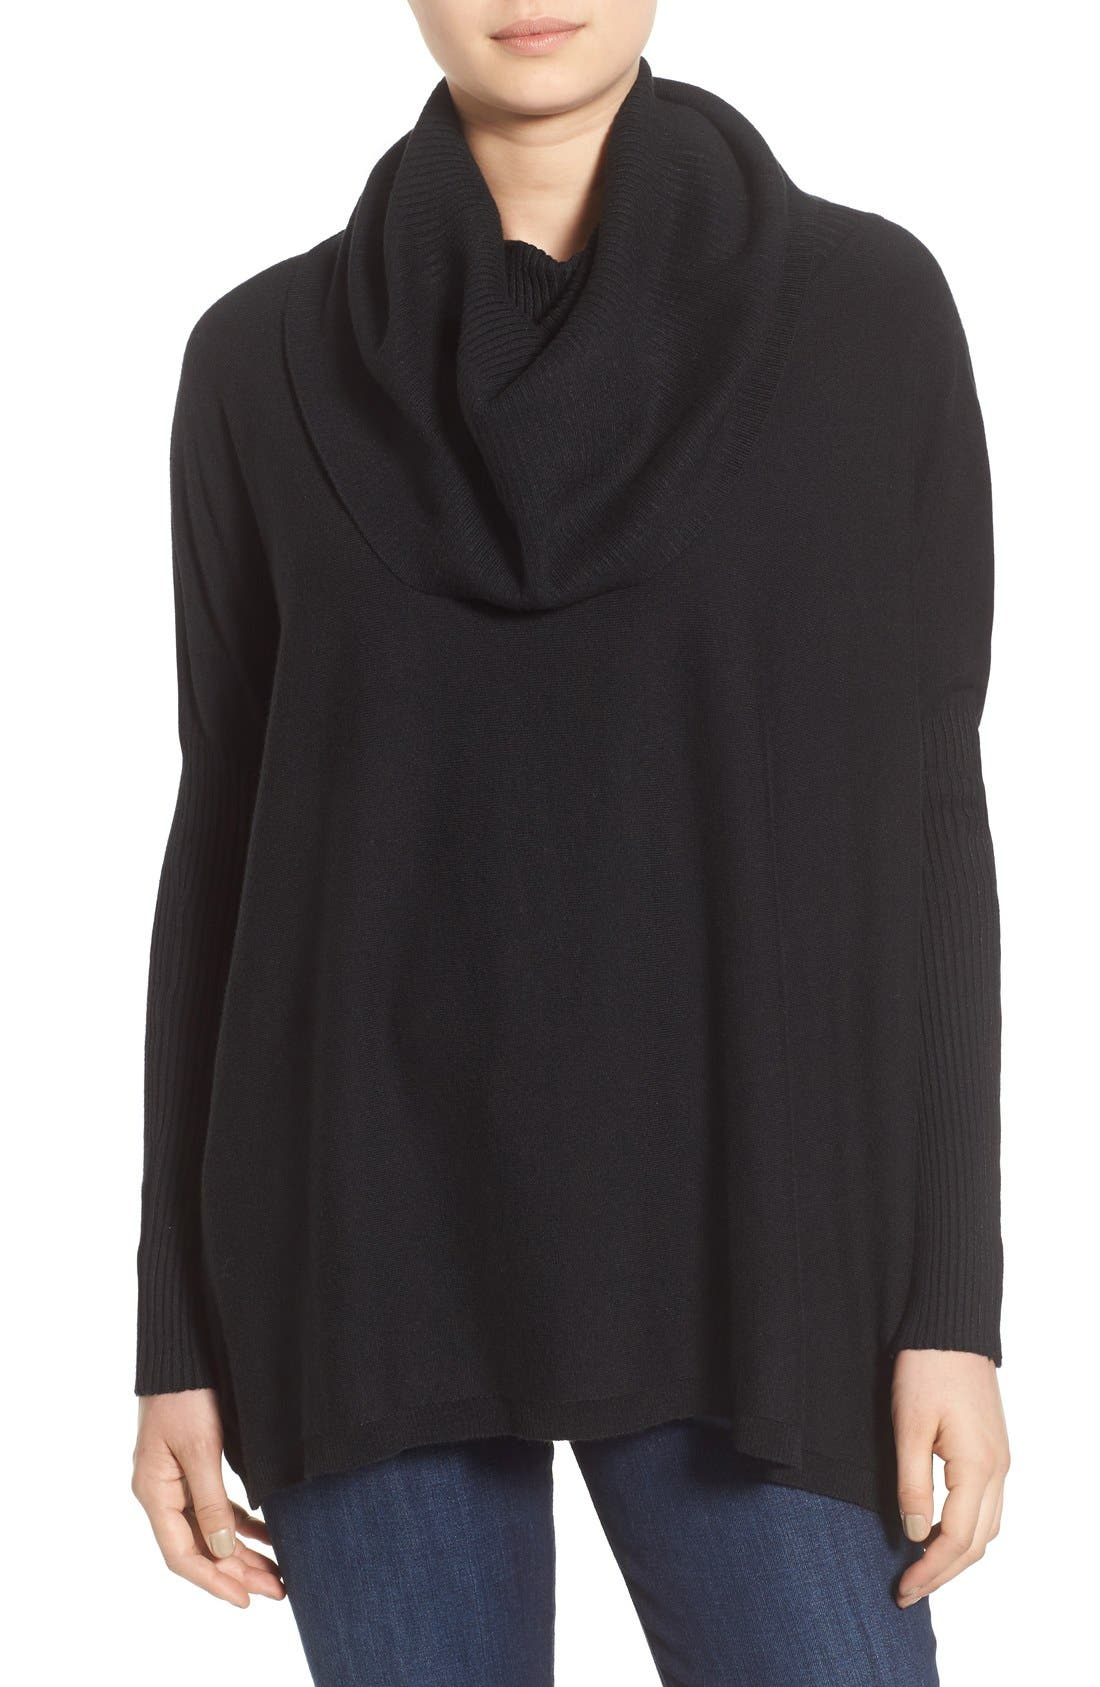 DREAMERS BY DEBUT, Cowl Neck Boxy Pullover, Main thumbnail 1, color, 001